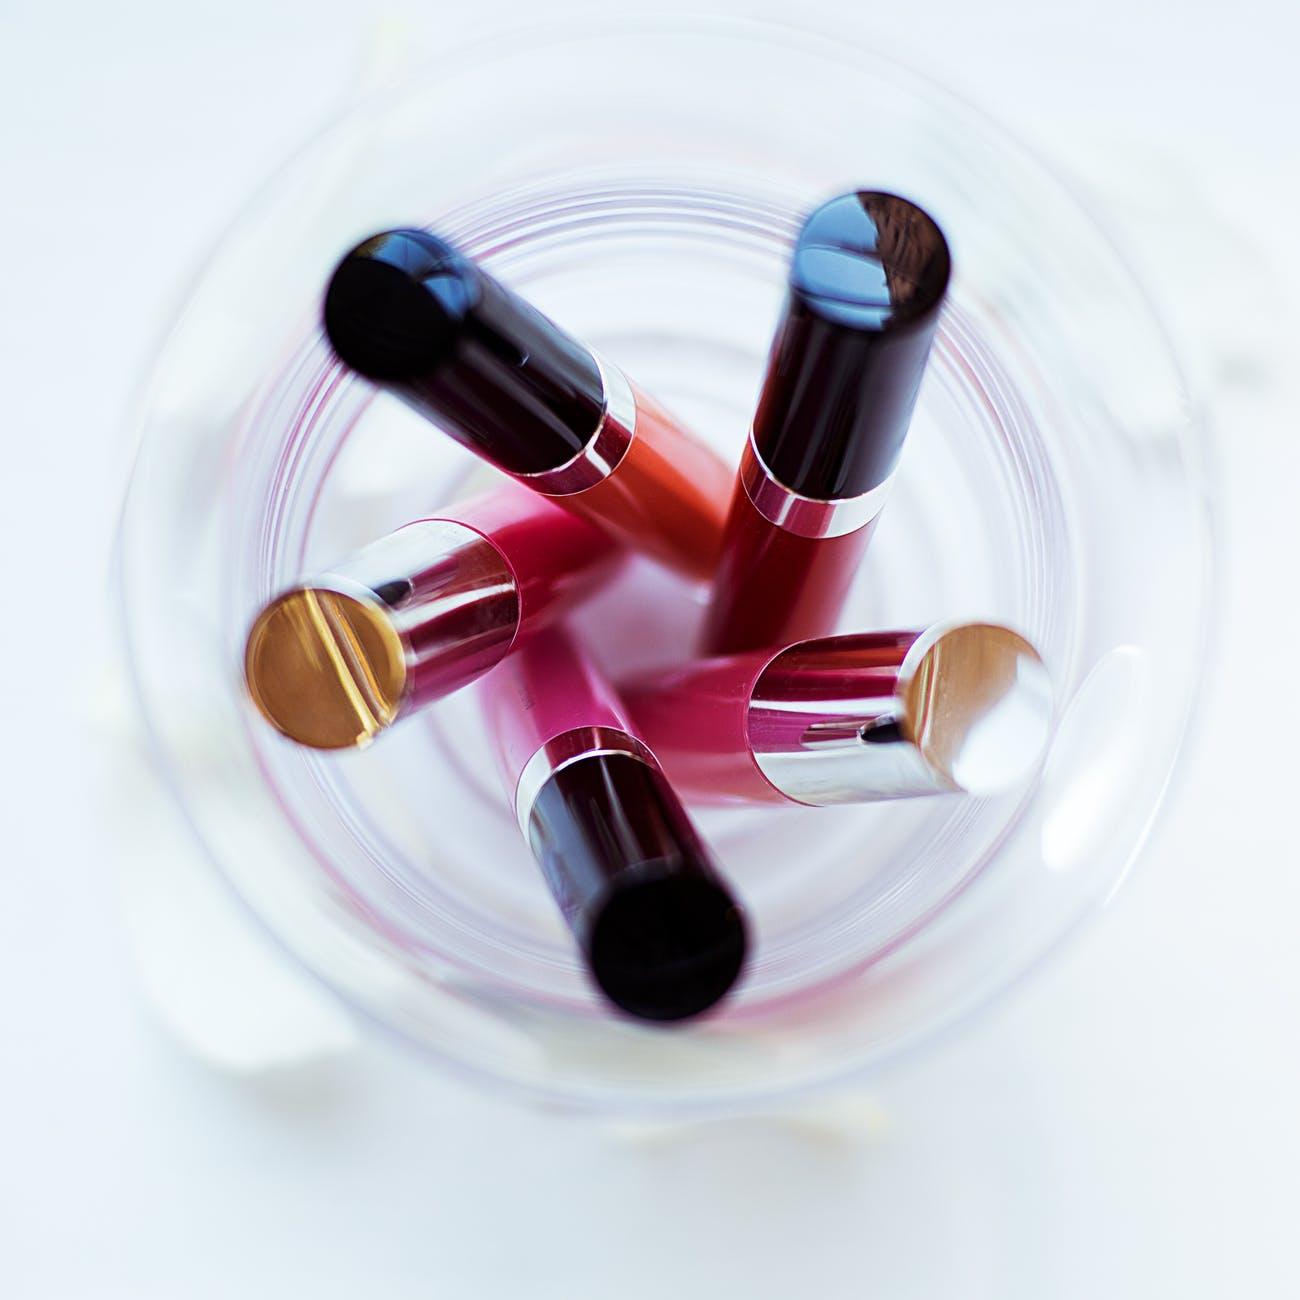 Make Beauties Fall in Love with Custom lipstick boxes